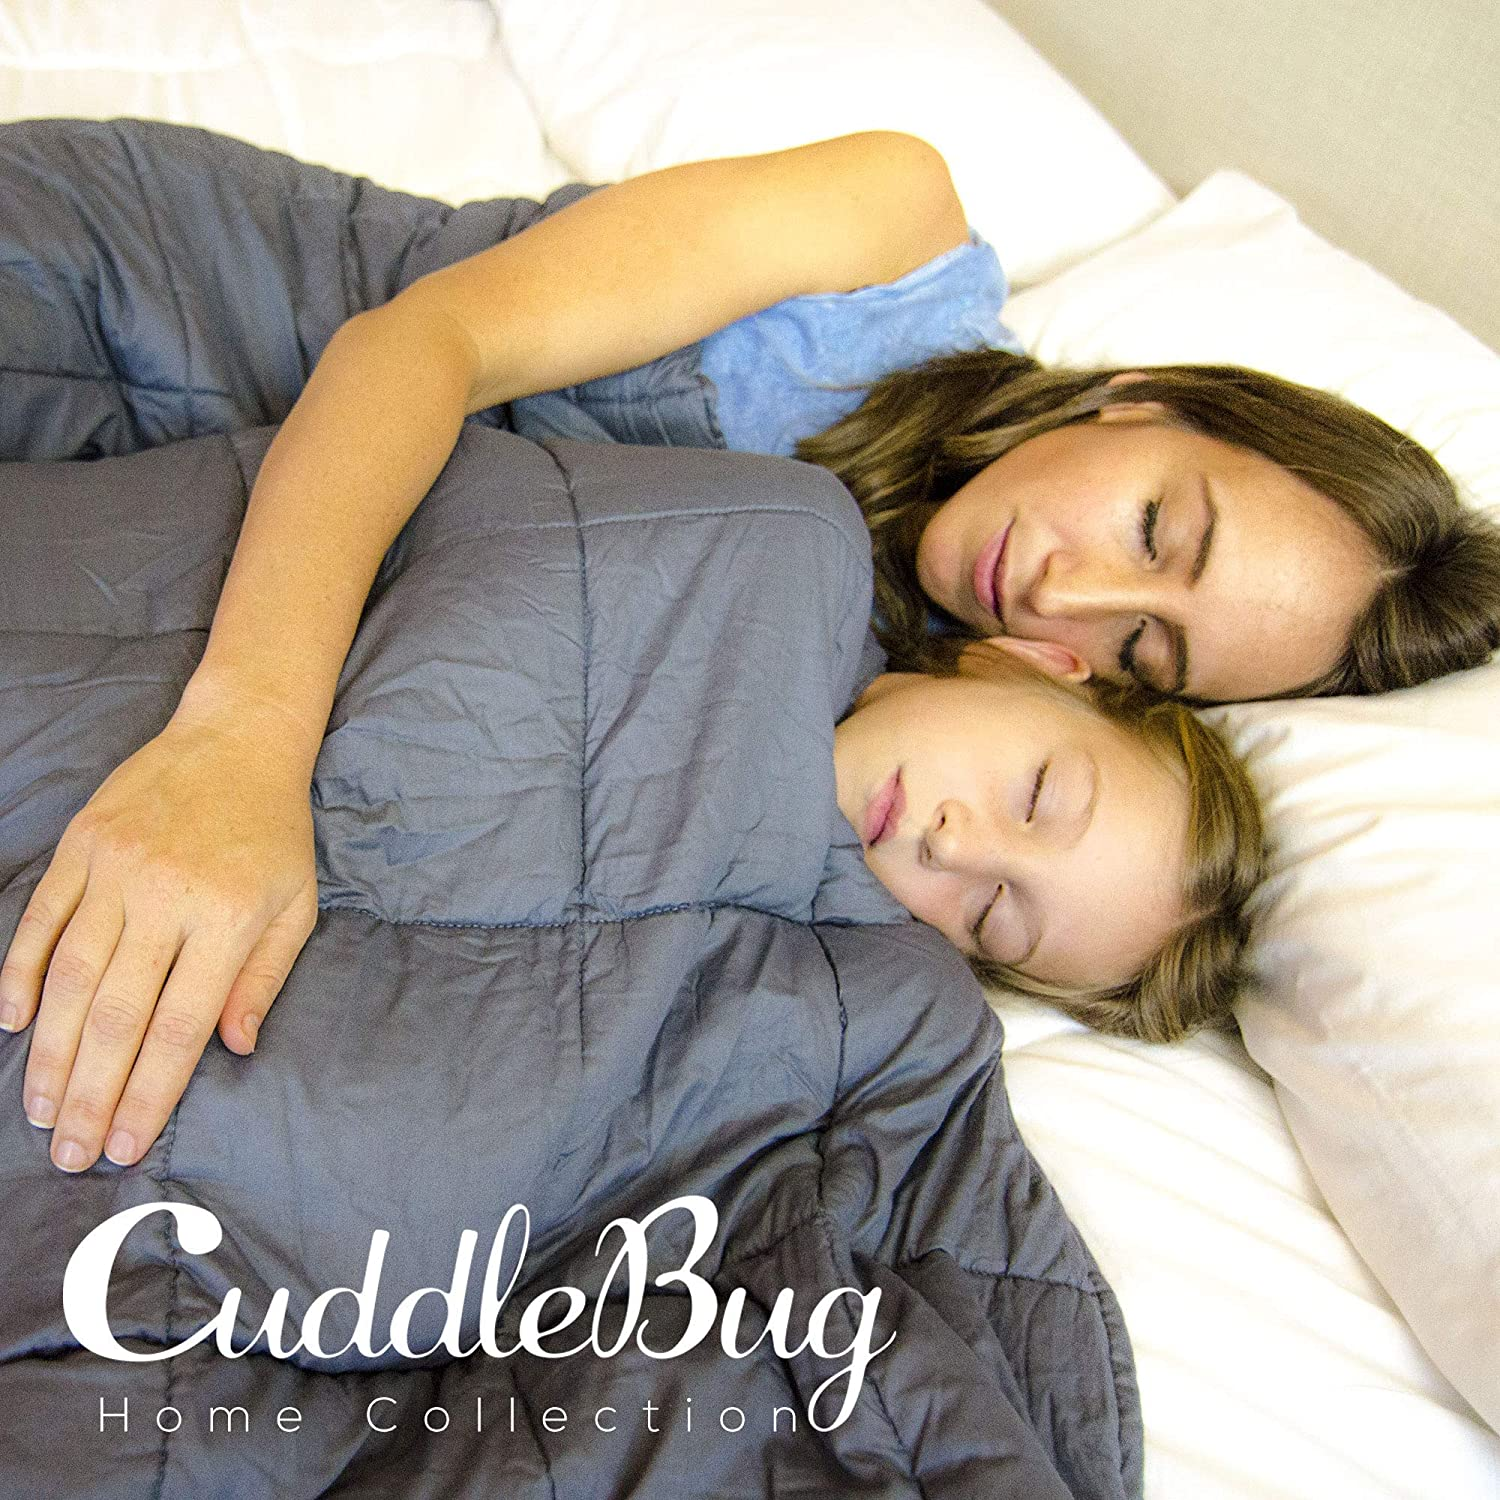 CuddleBug 10 lb Weighted Blanket for Kids